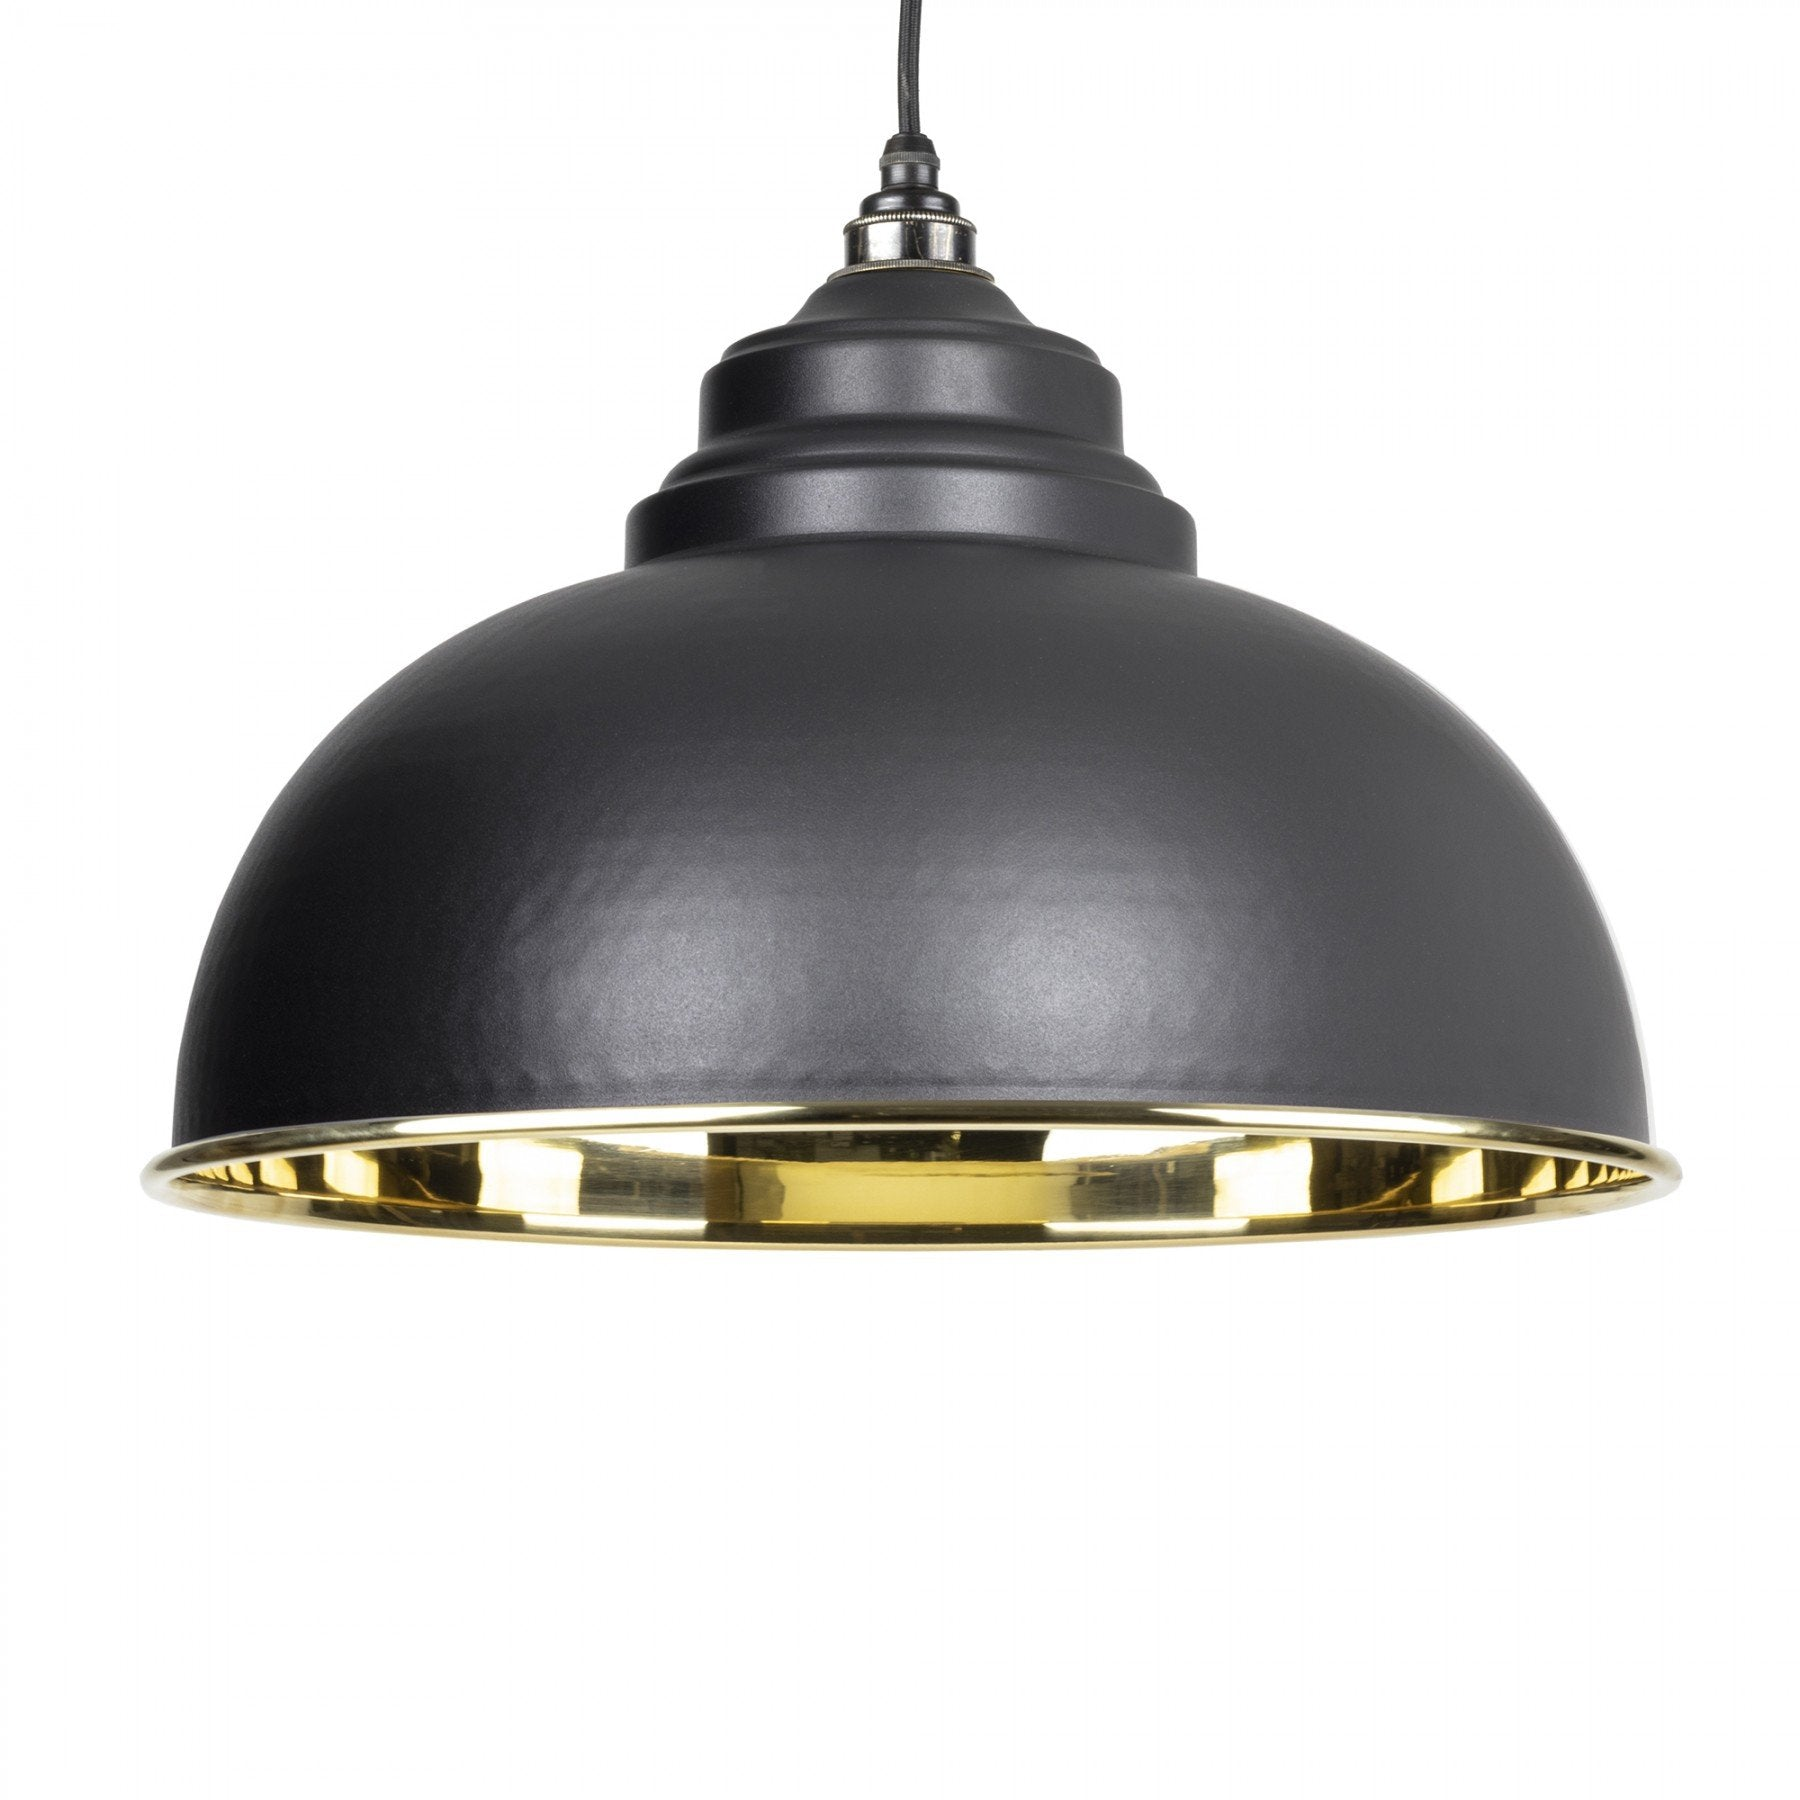 From The Anvil Black & Smooth Brass Interior Harborne Pendant - No.42 Interiors